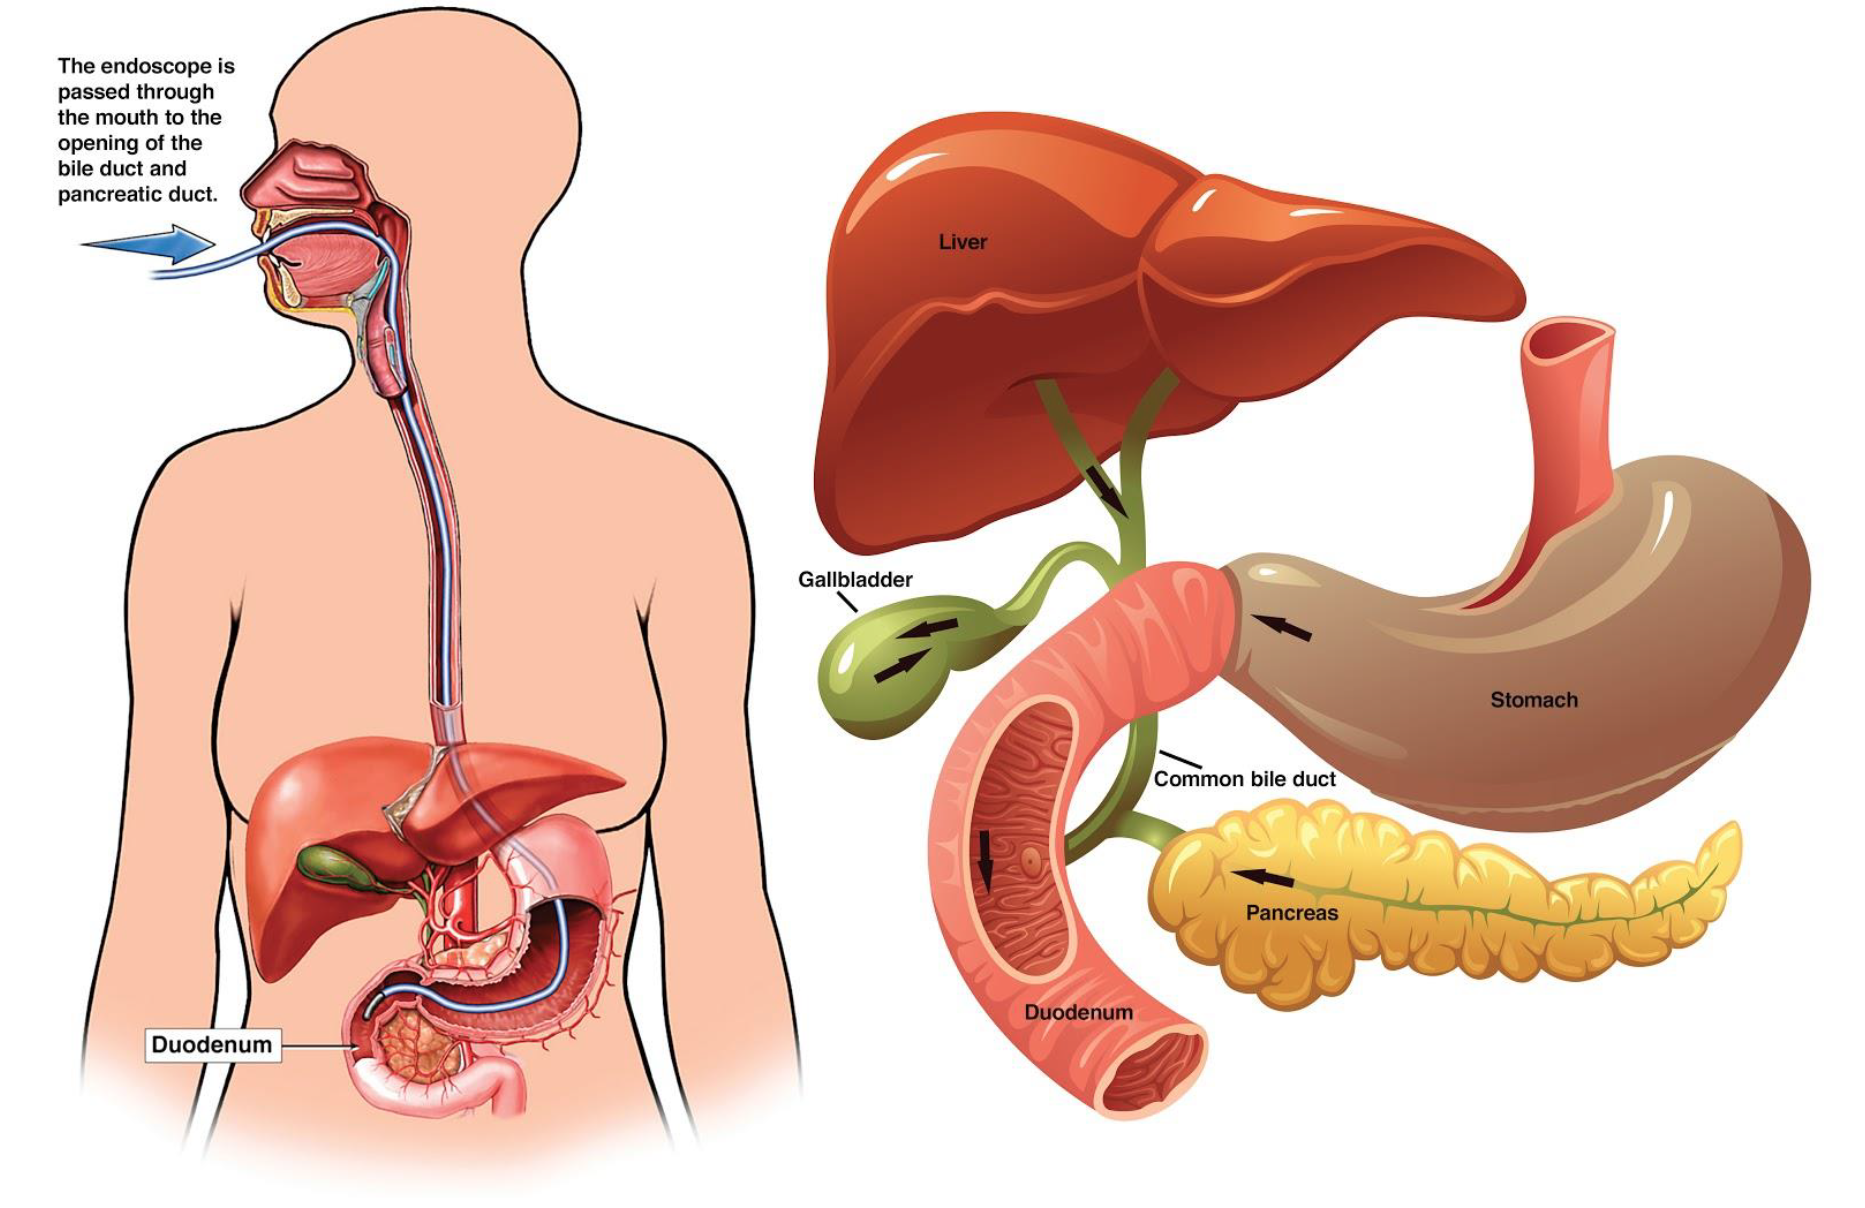 Ercp Endoscopic Retrograde Cholangio Pancreatography Patient Information From Sages